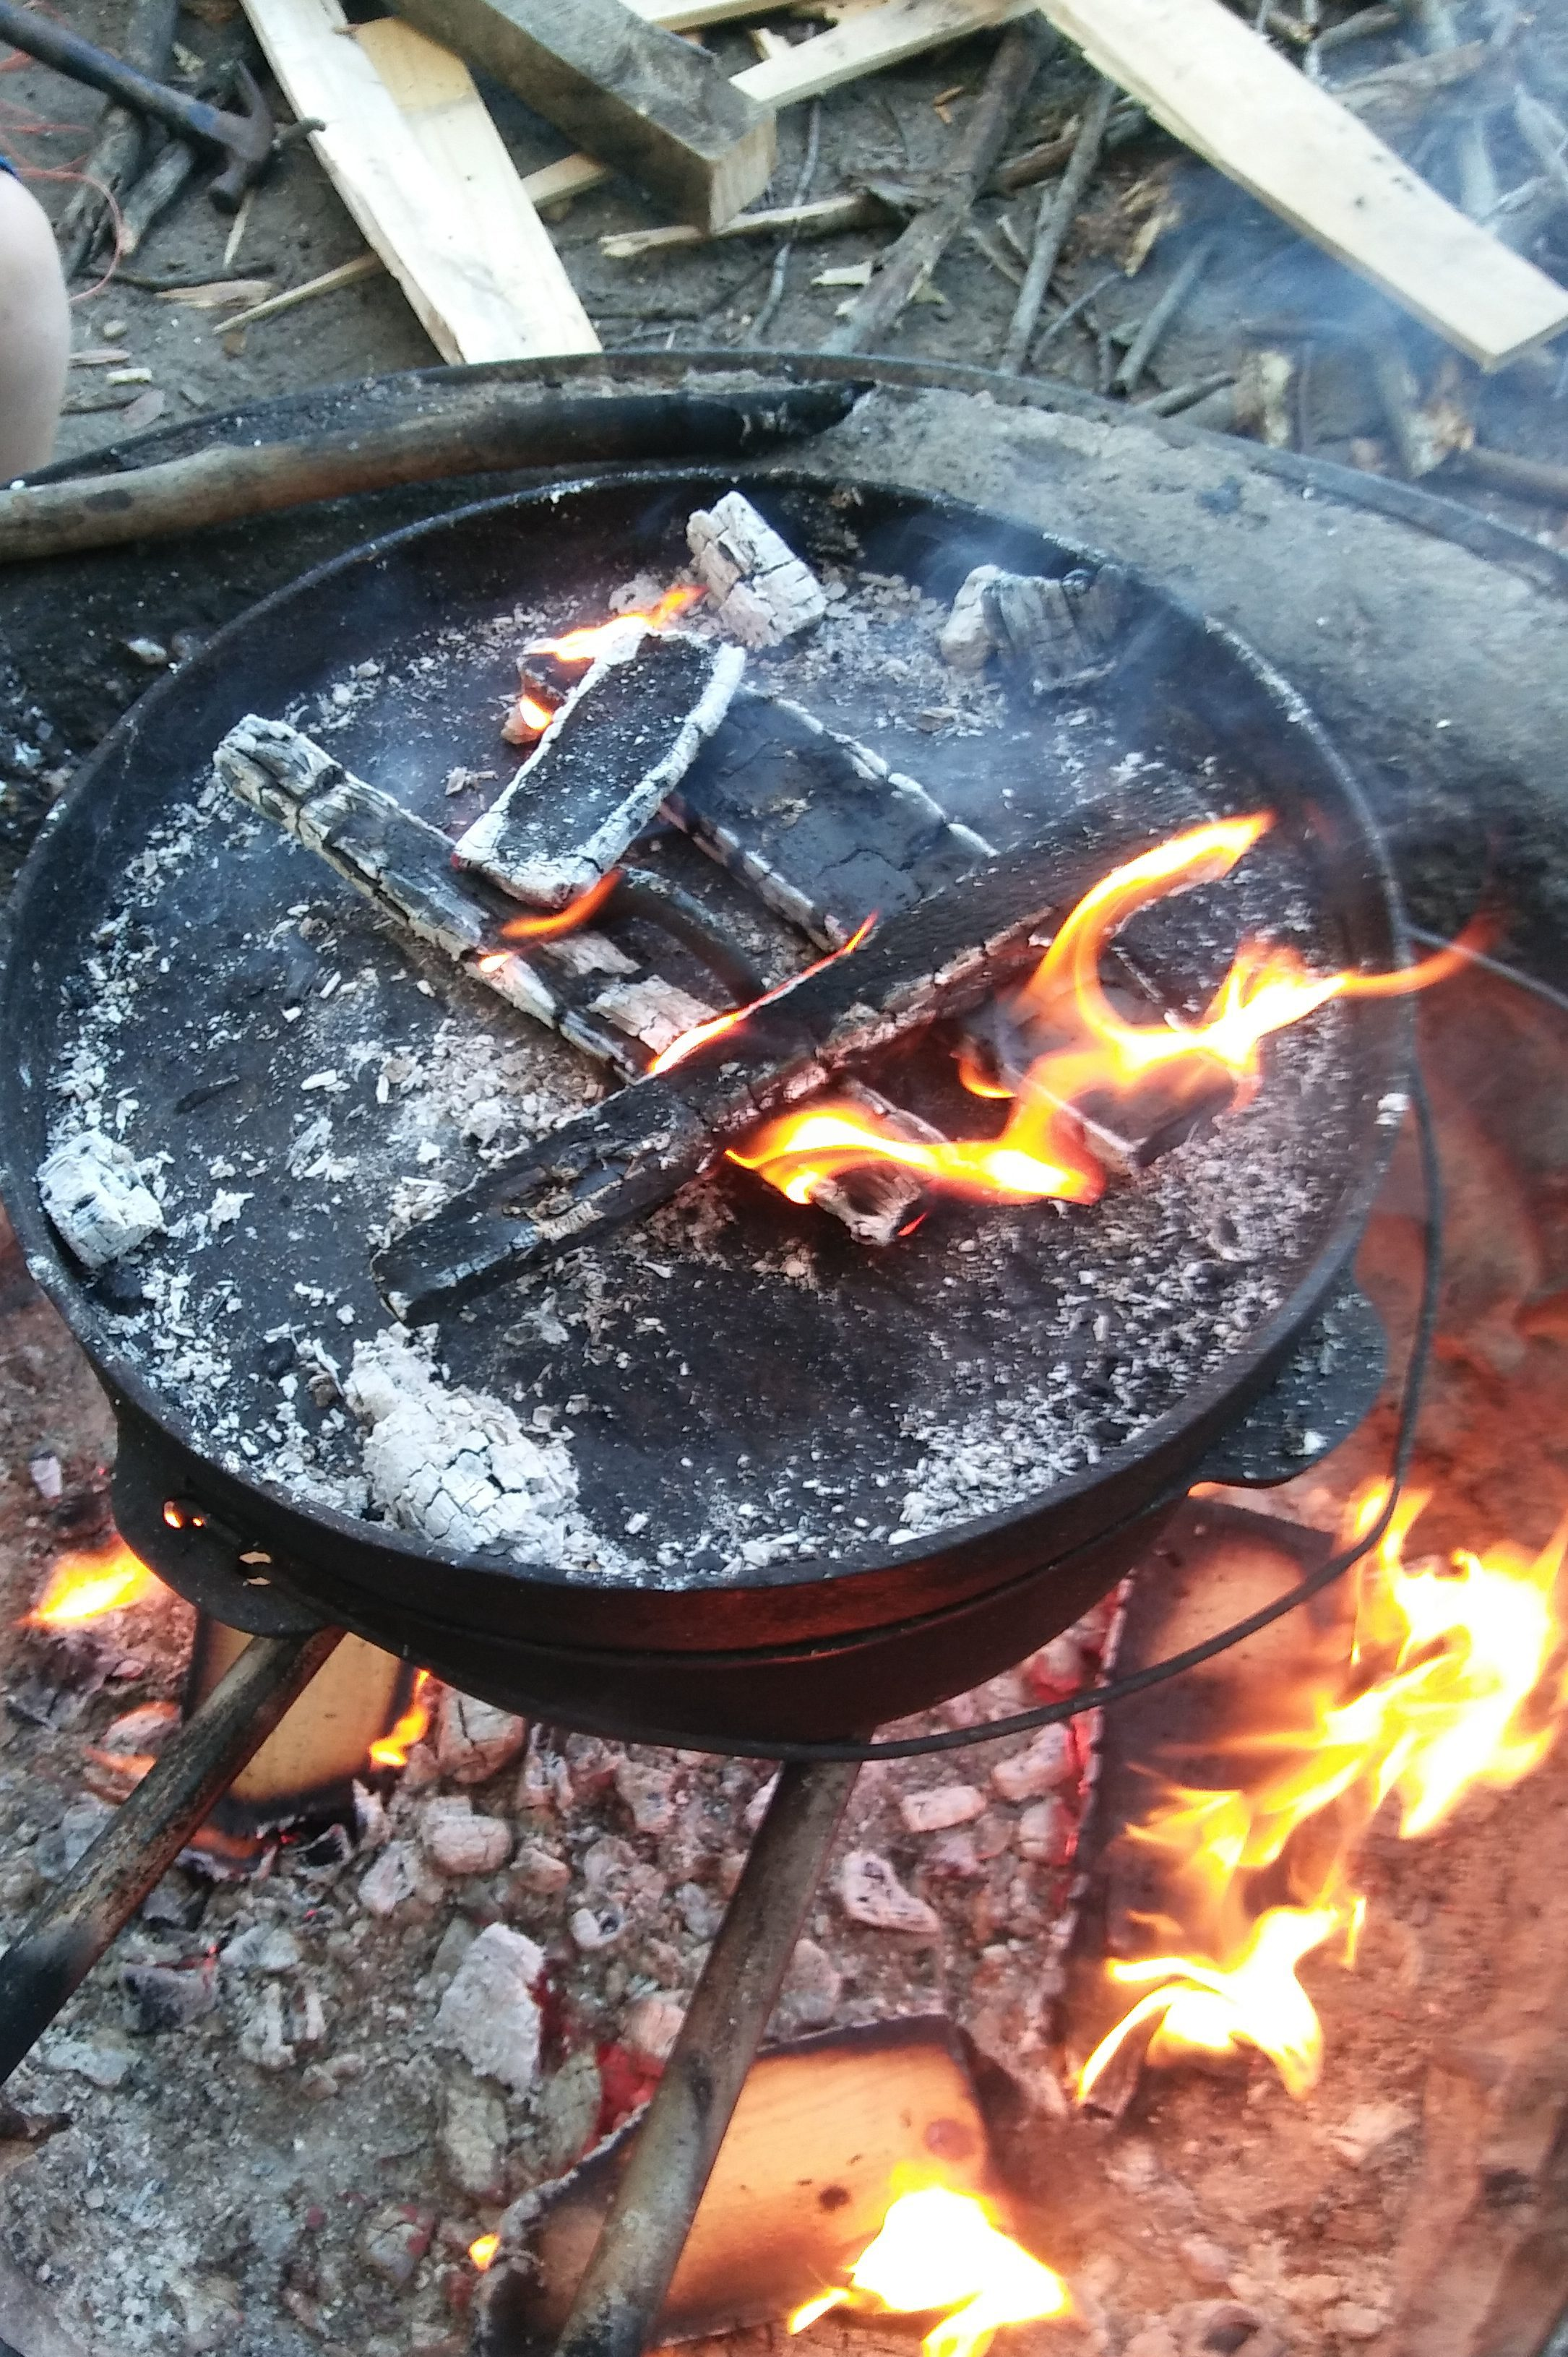 Cooking Over An Open Fire Pit – Chicken and Vegetable Dinner